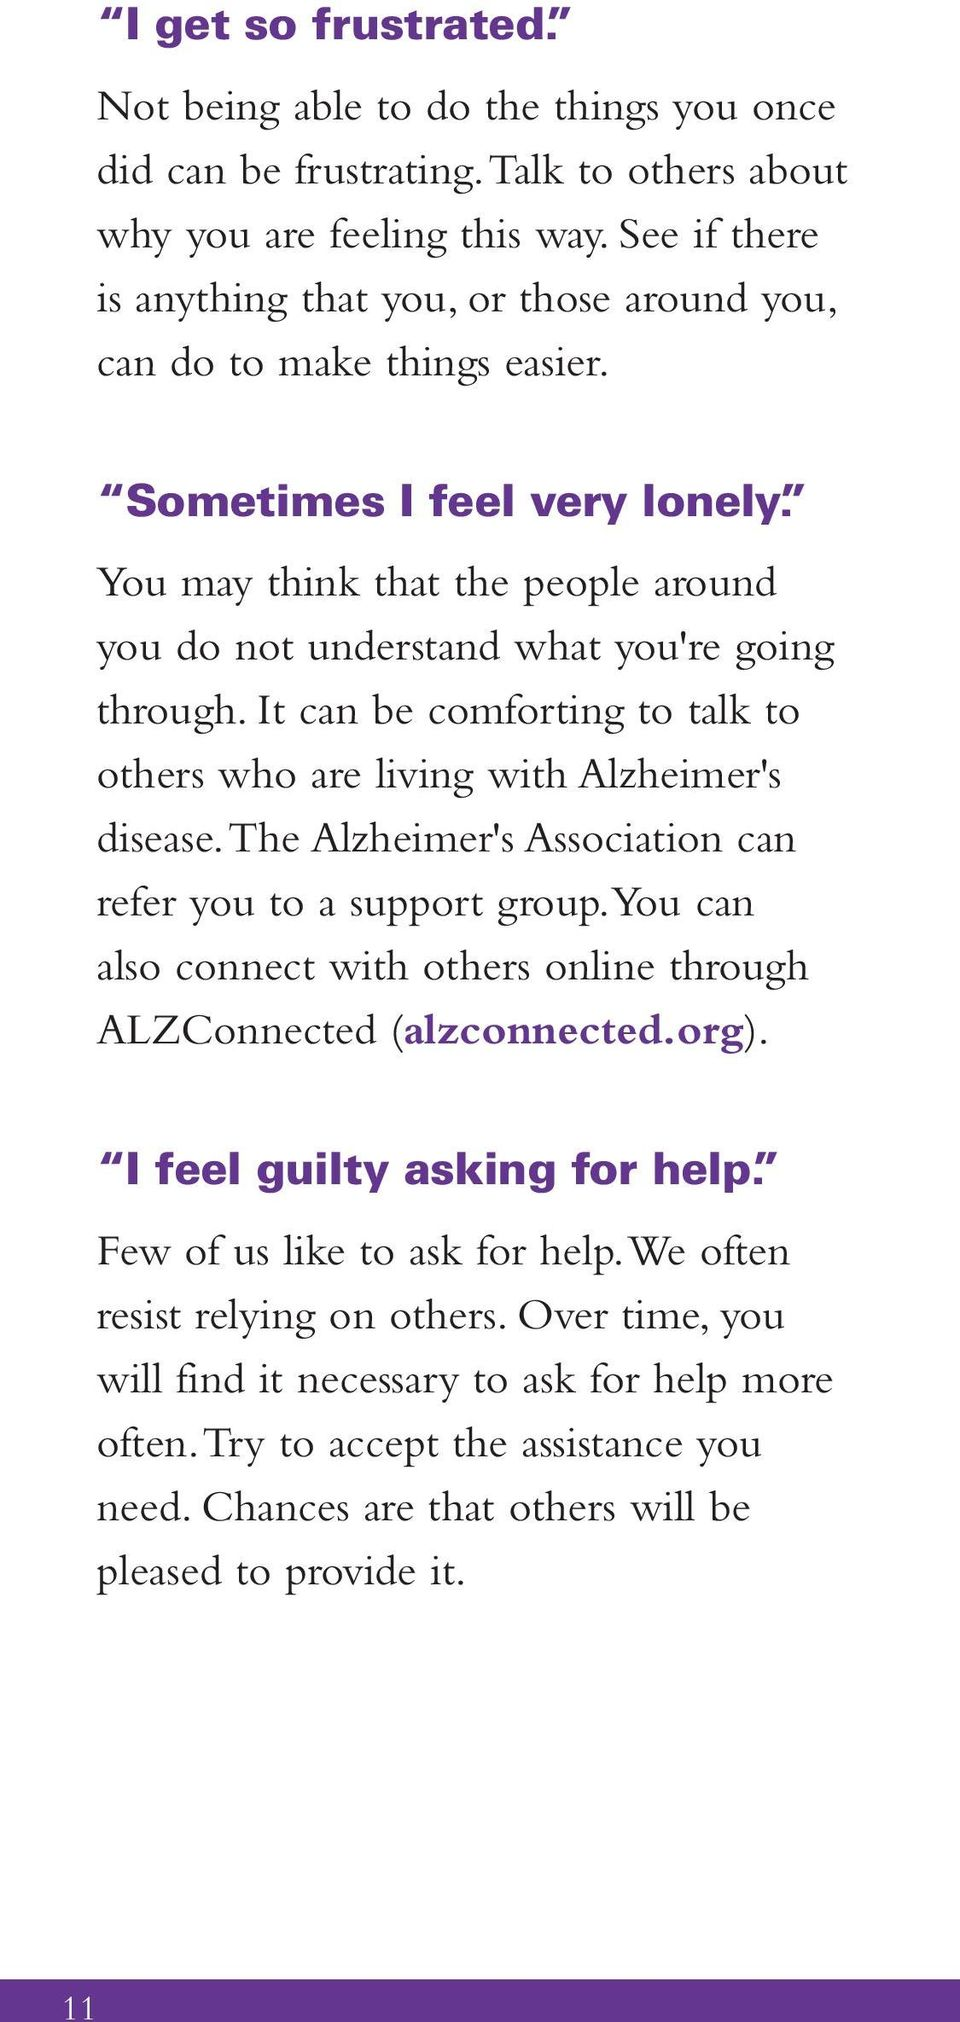 You may think that the people around you do not understand what you're going through. It can be comforting to talk to others who are living with Alzheimer's disease.